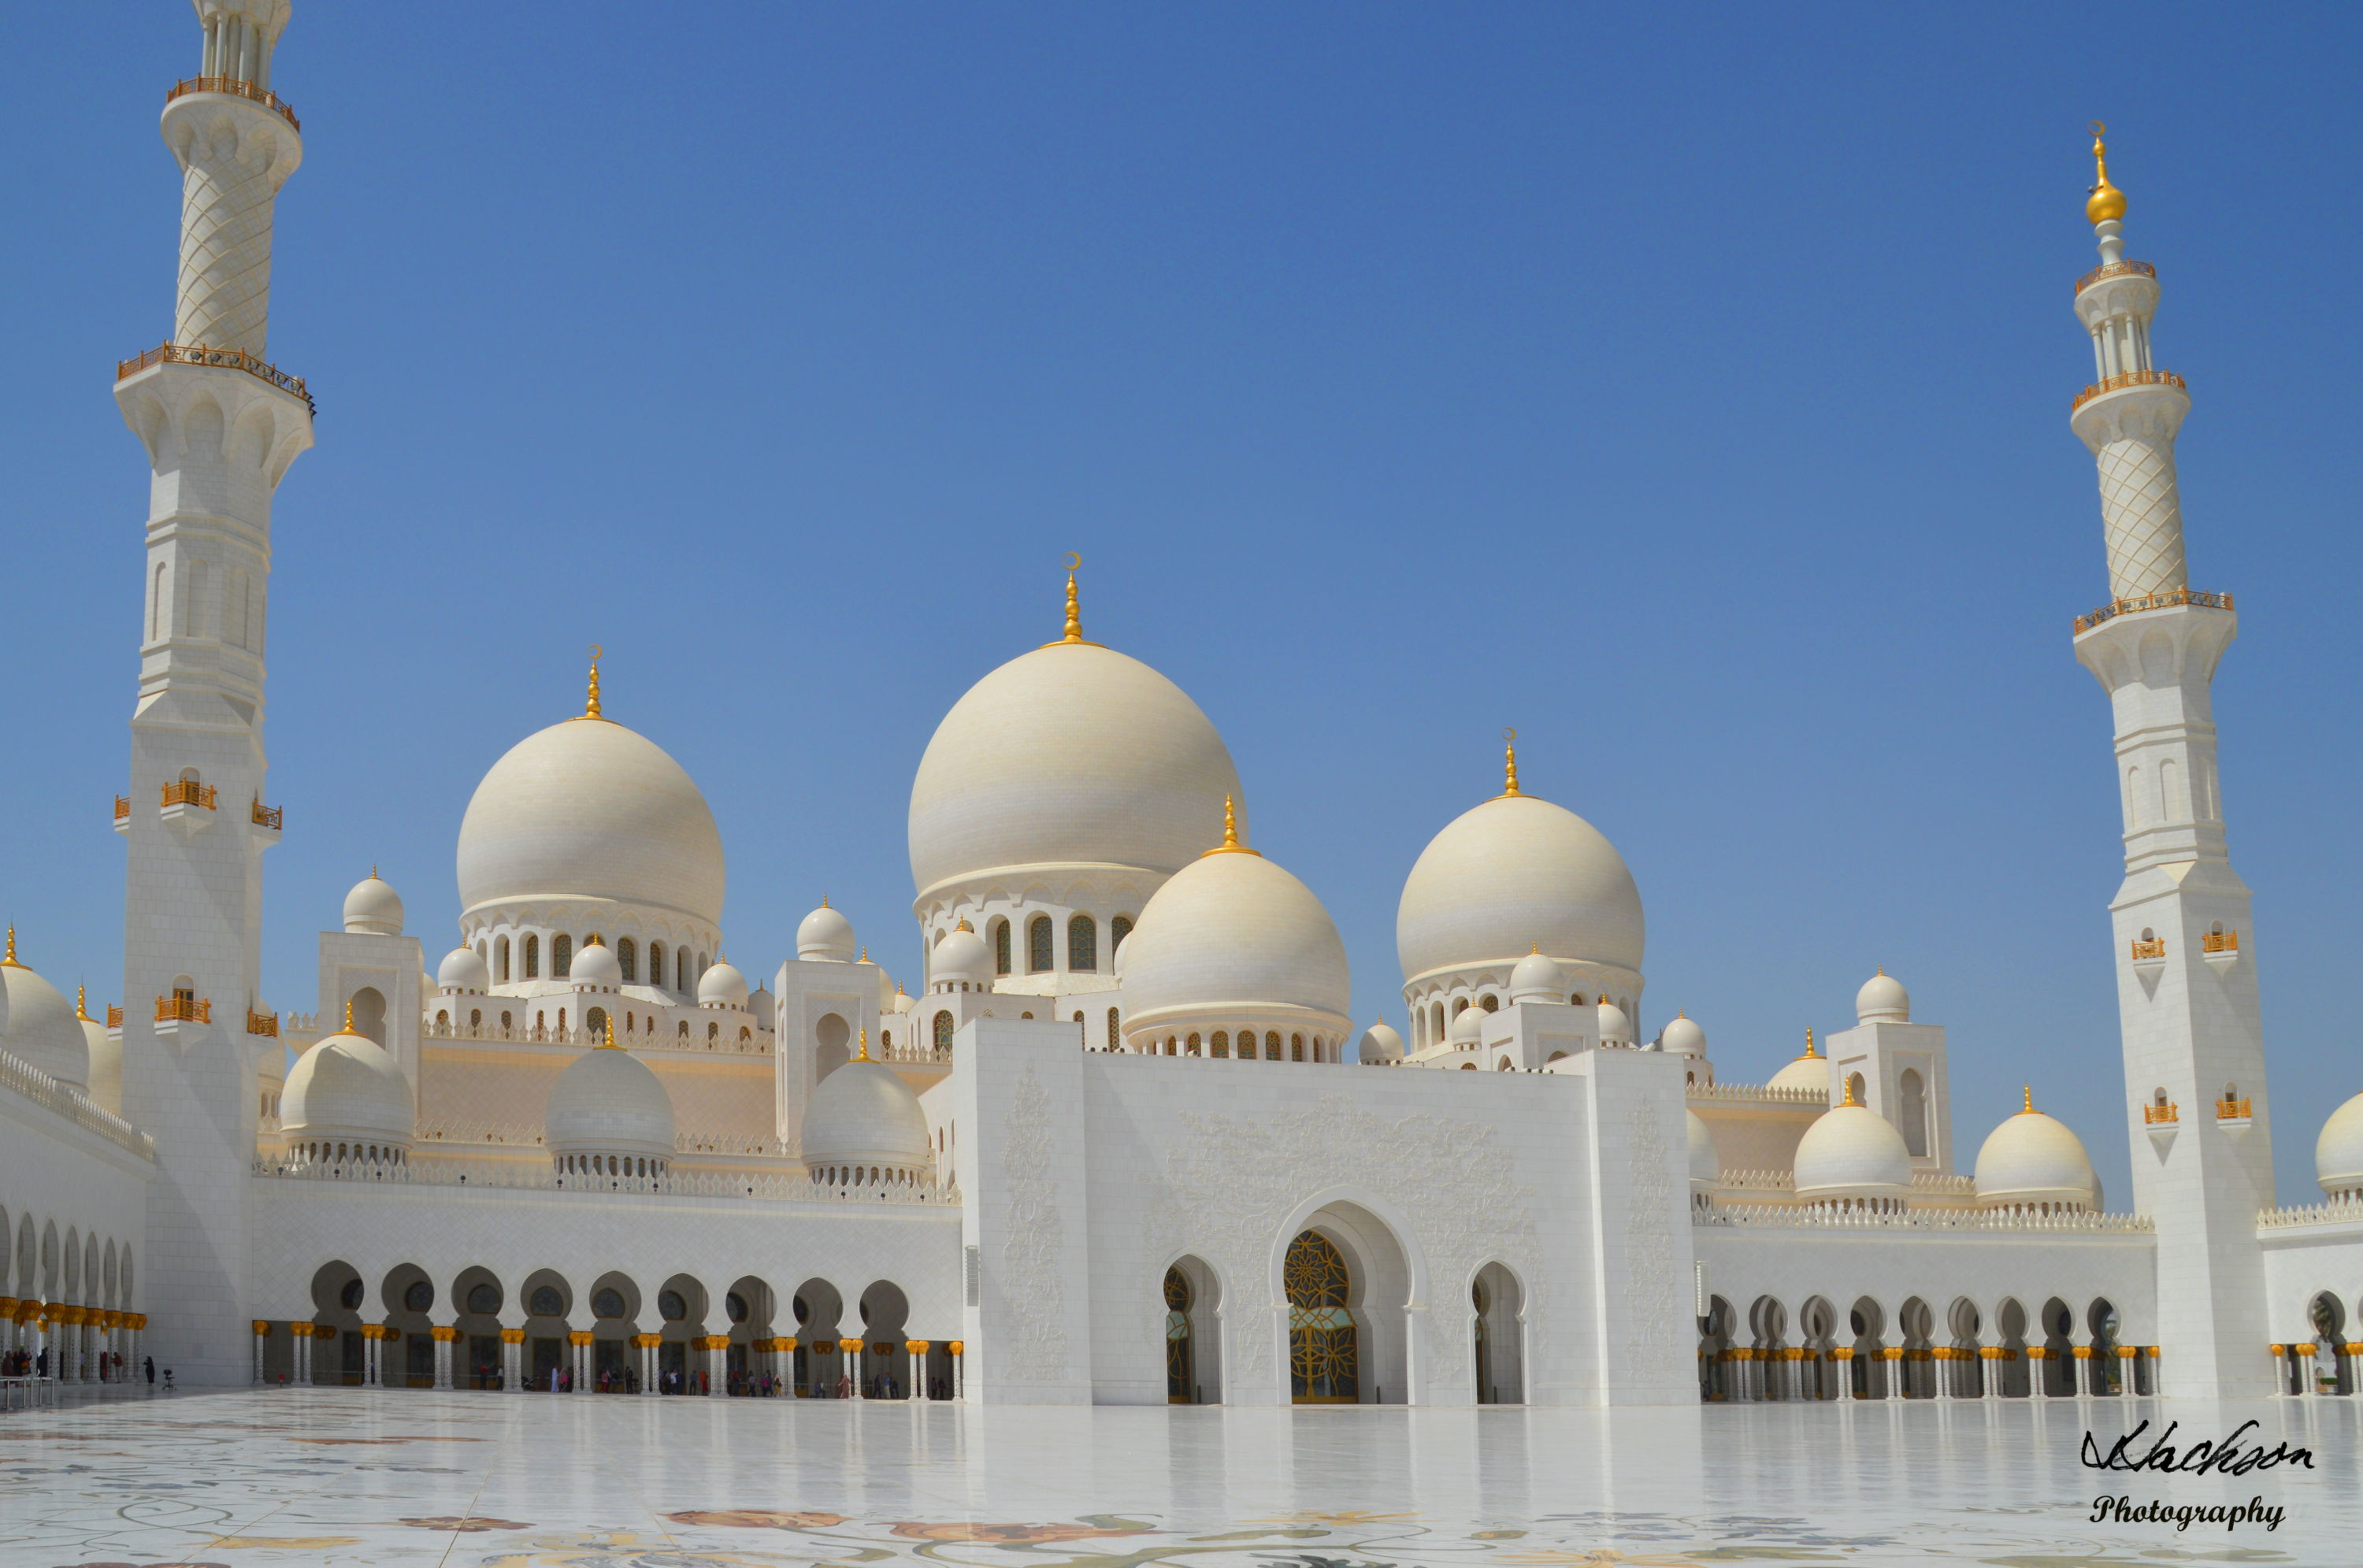 Photo of the The Grand Mosque in Abu Dhabi